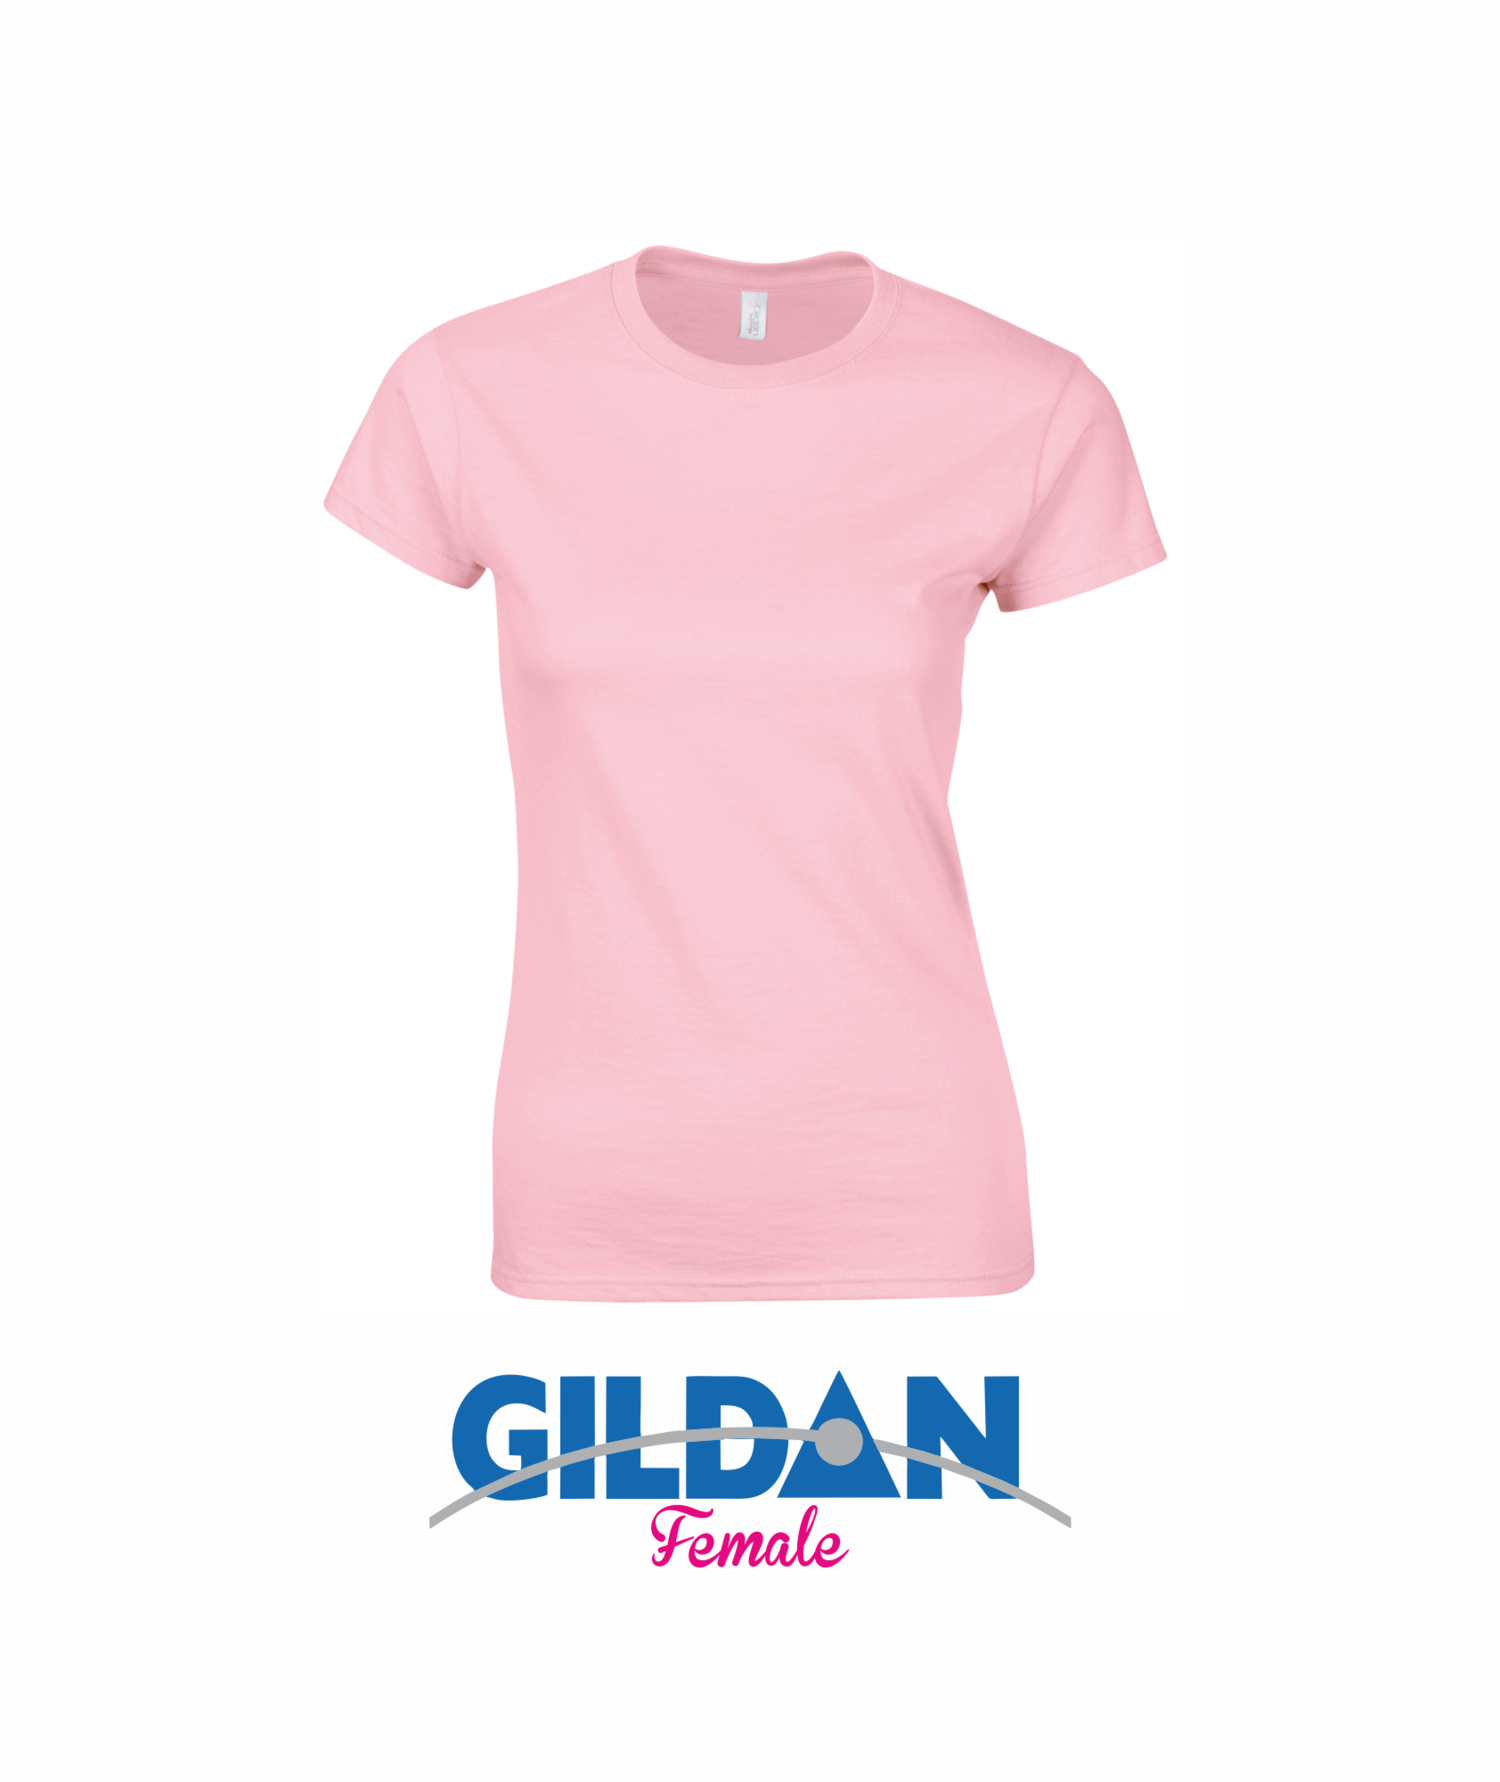 fd6a3fc3c92fa5 Softstyle® women's ringspun t-shirt — UR-iD - Same day Embroidery & Printing